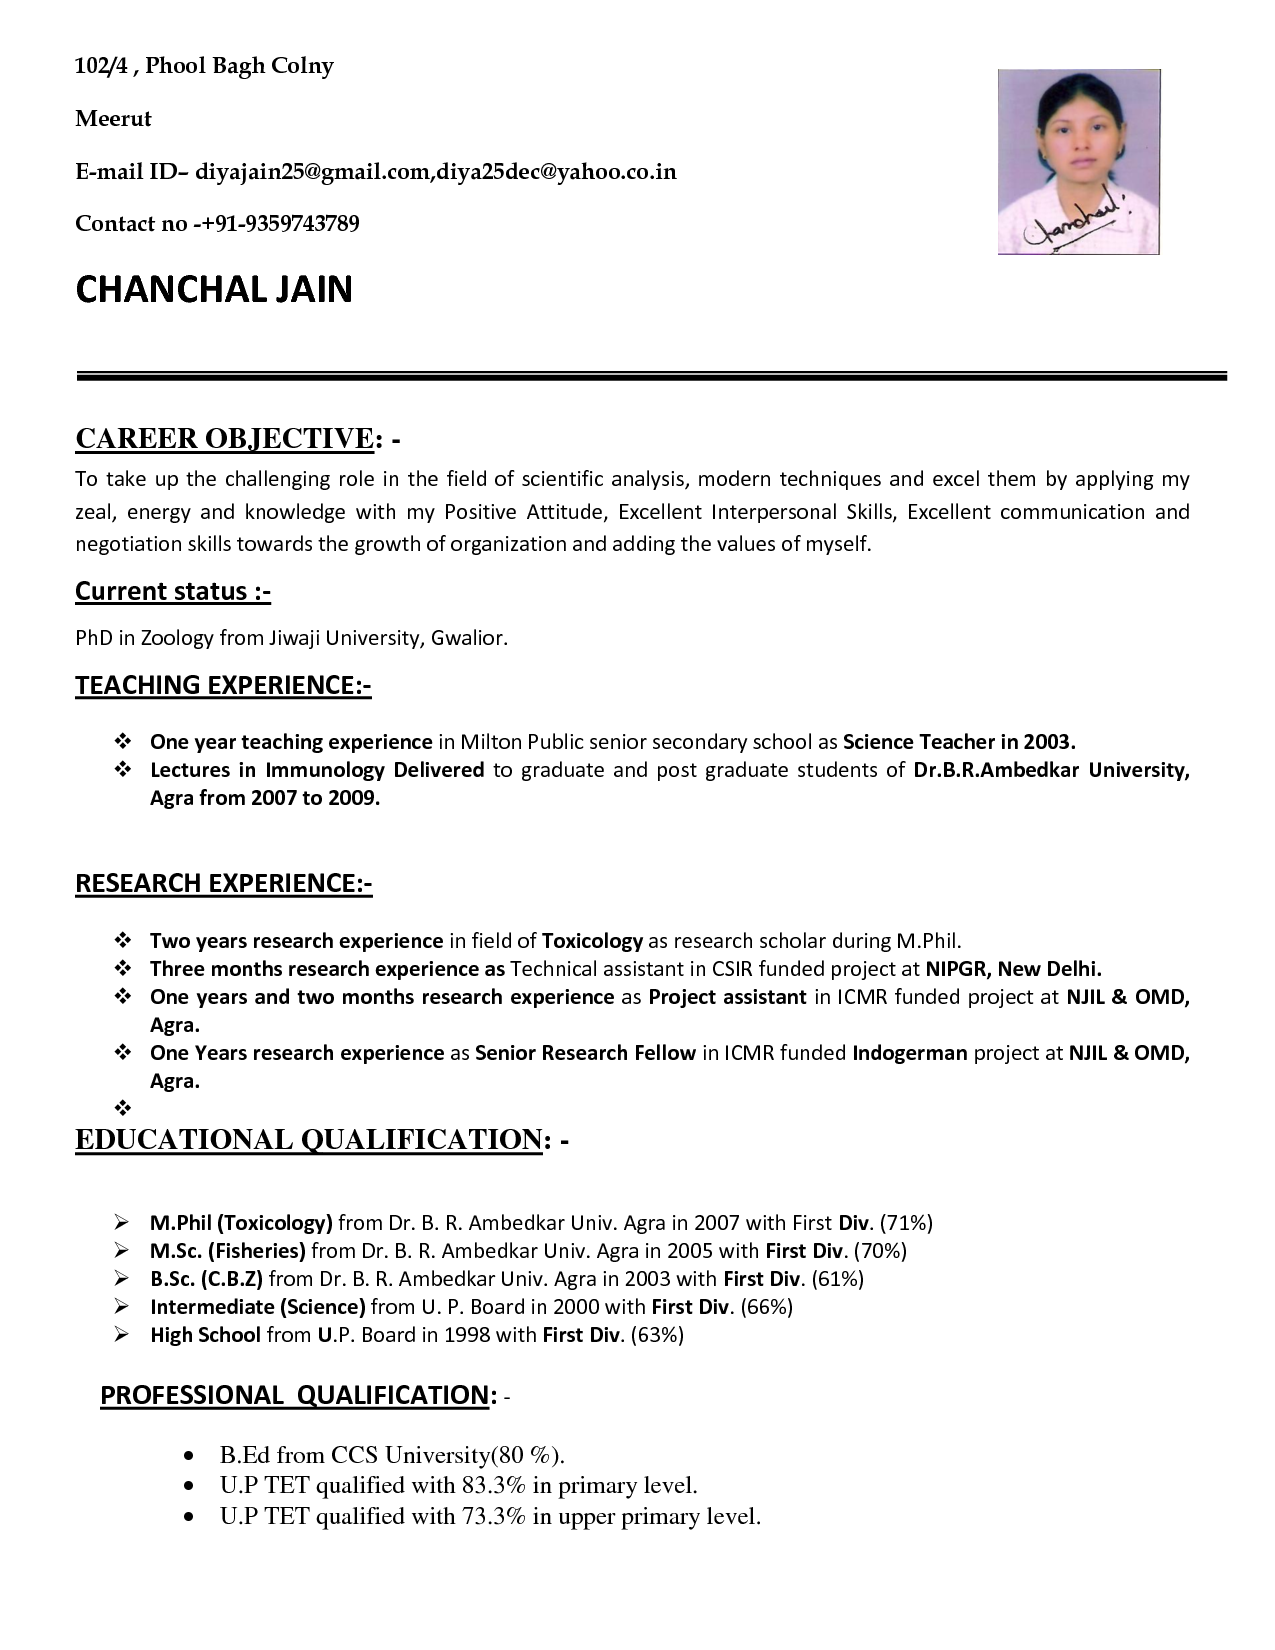 how to make a resume for a job